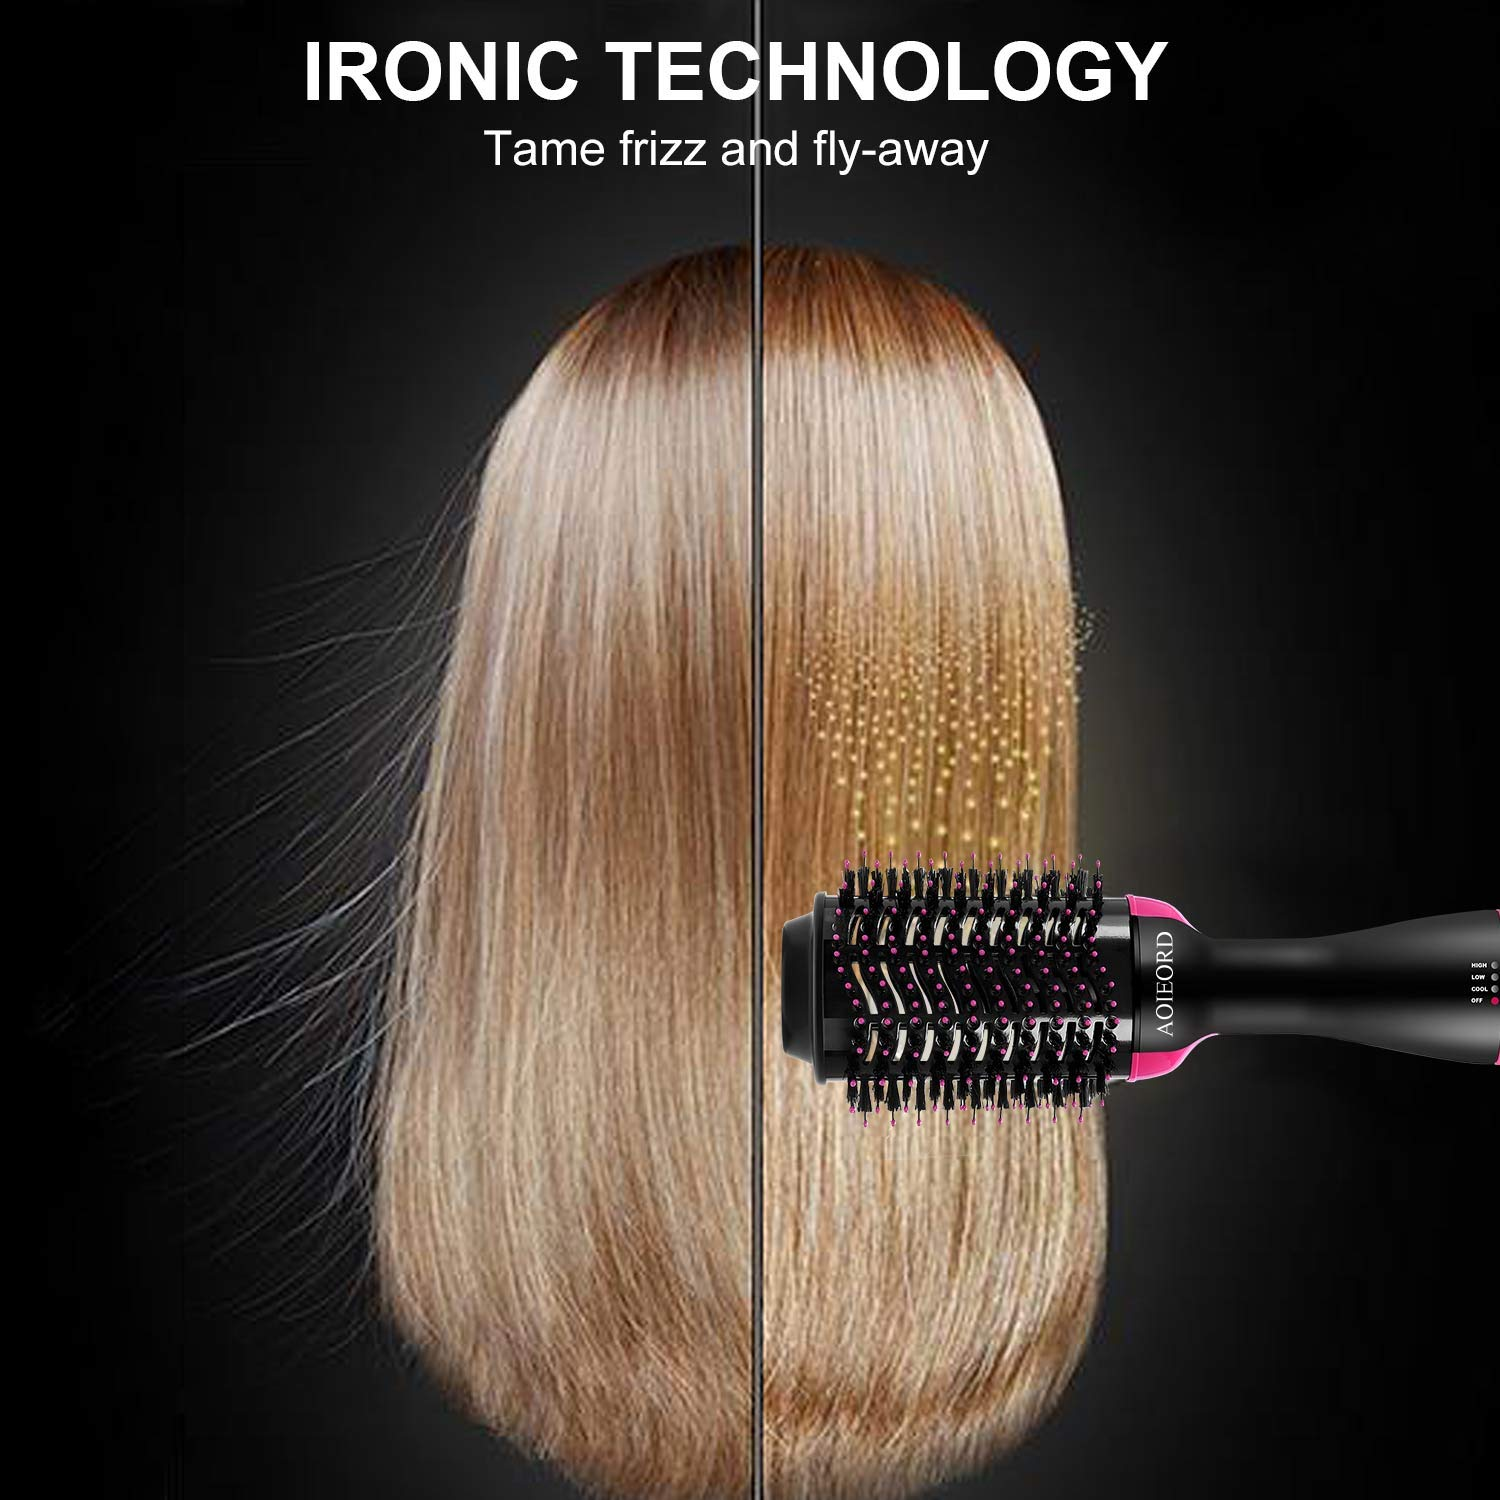 Hair Dryer Brush, AOIEORD Dry & Straighten & Curl in One Step Hair Dryer and Volumizer, Smooth Frizz with Ionic Technology by AOIEORD (Image #2)